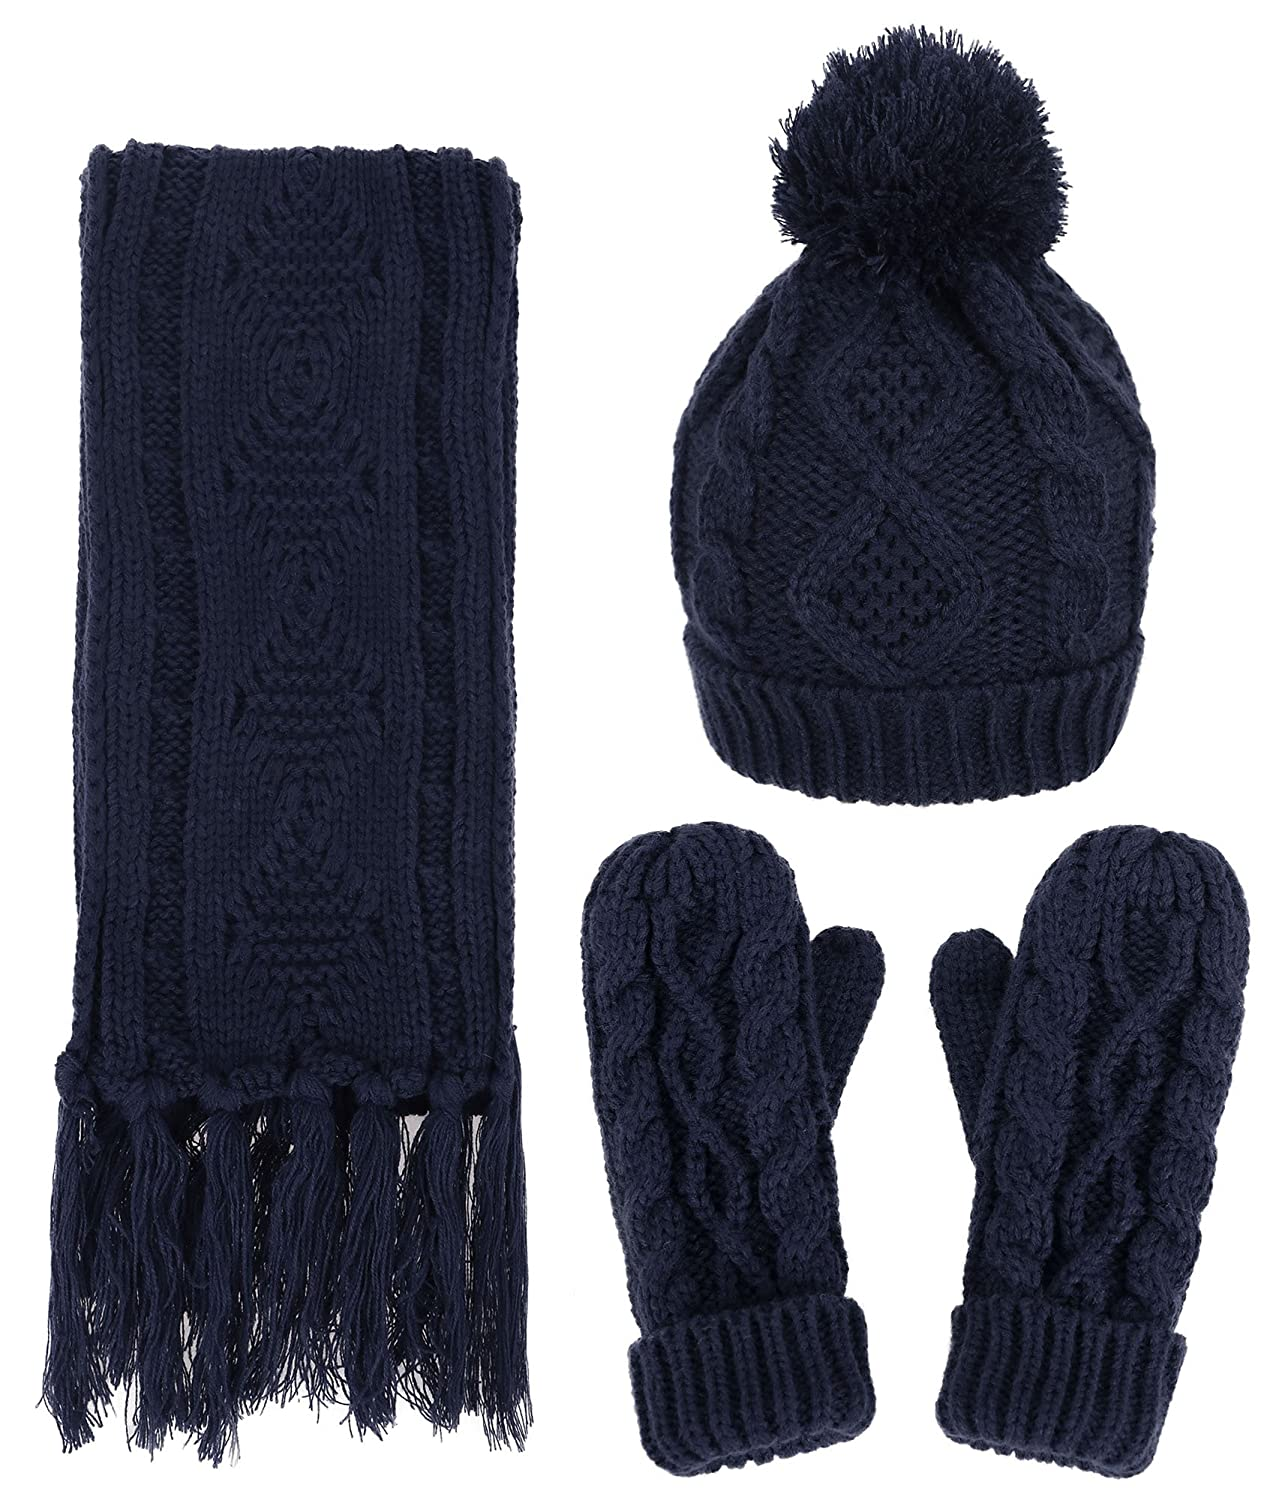 Women's Winter 3PC Cable Knit Beanie Hat Gloves&Scarf Set Simplicity MC171014300117-CA